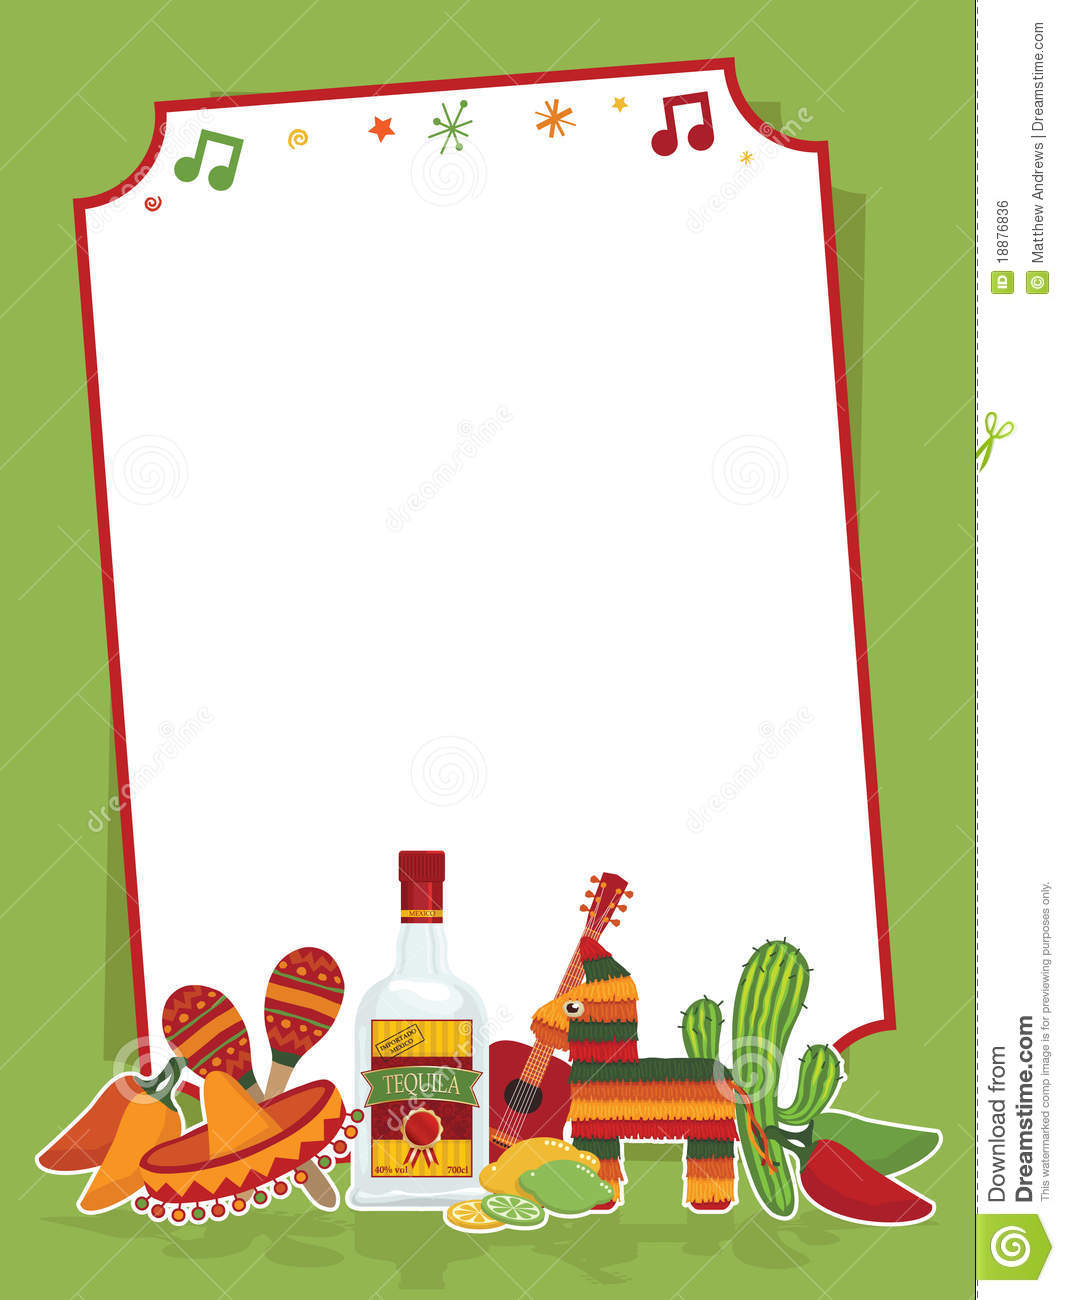 mexican themed powerpoint template - mexican party sign stock vector illustration of fiesta